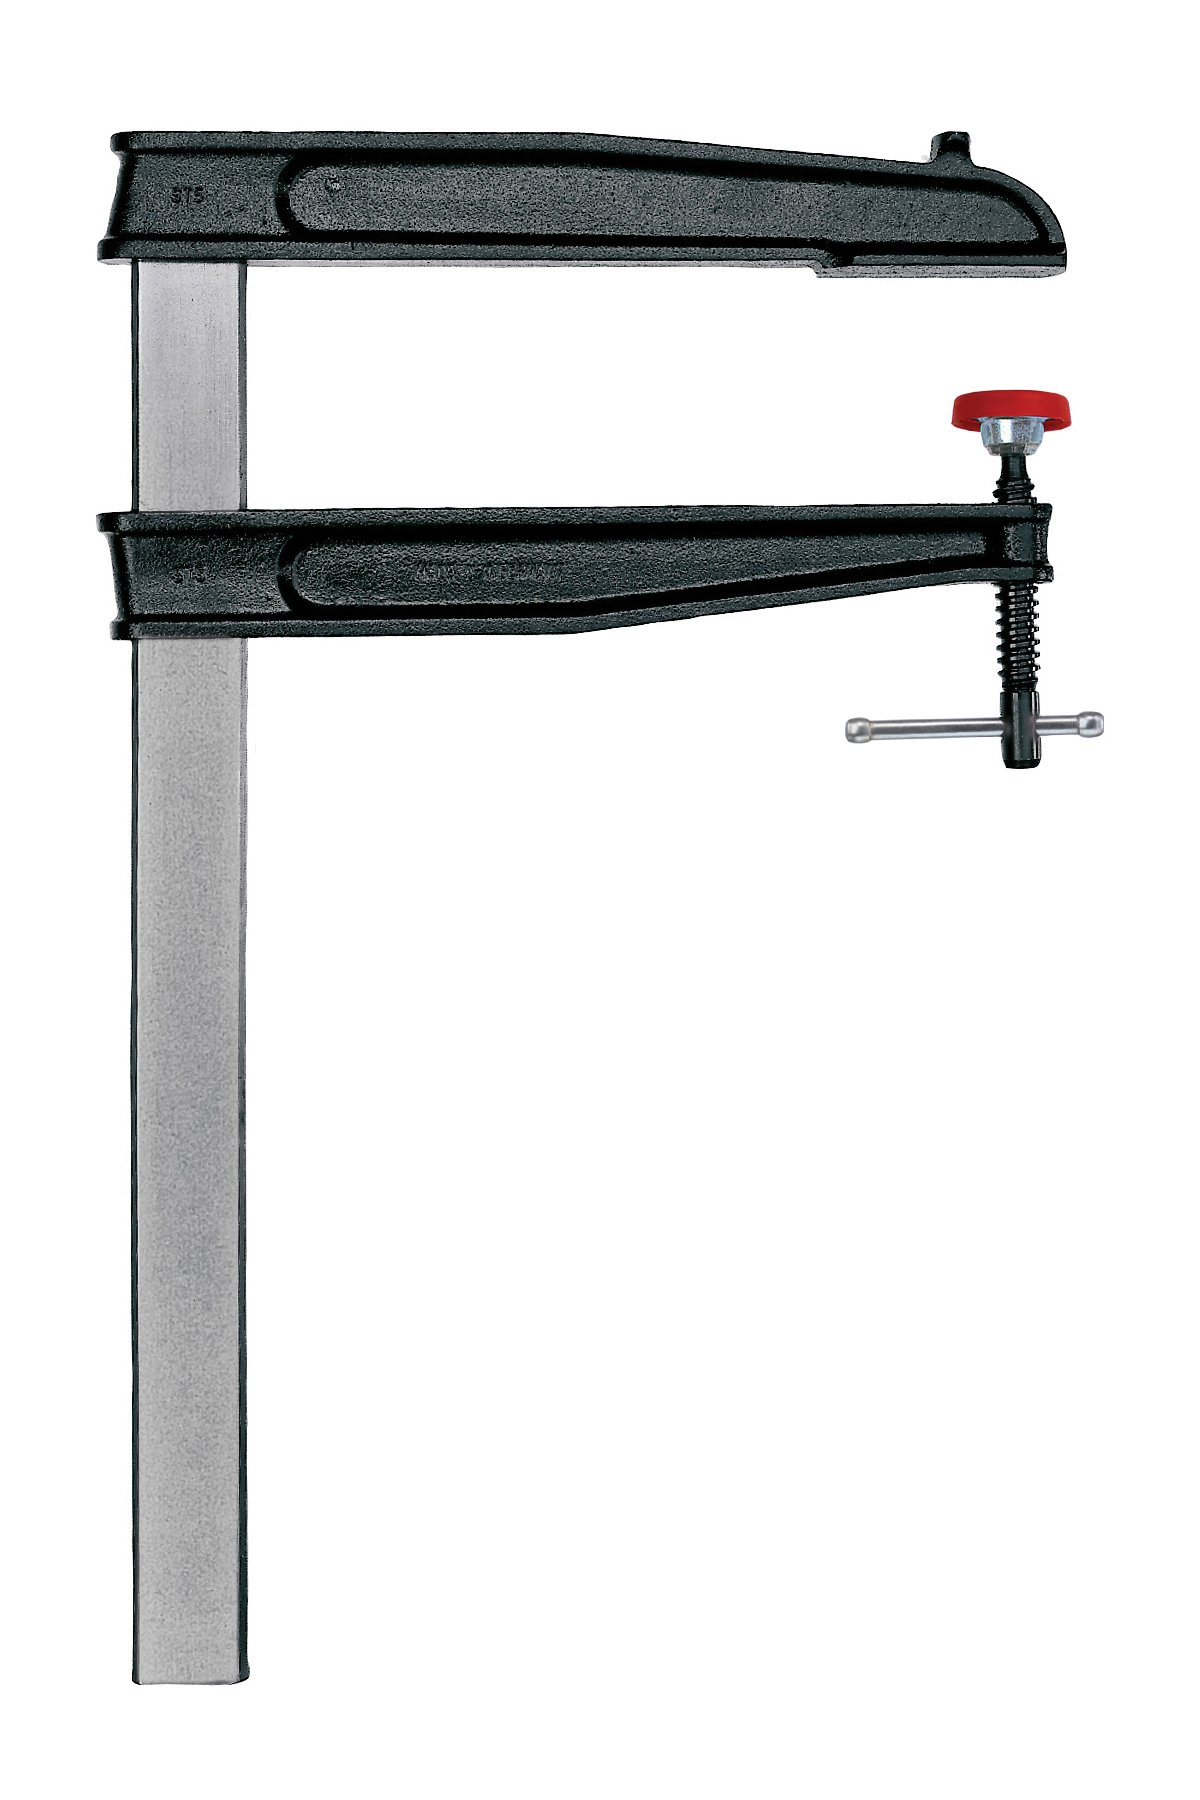 Bessey CDS24-12WP 12-Inch Throat x 24-Inch Opening Heavy Duty Tradesmen Bar Clamp by Bessey